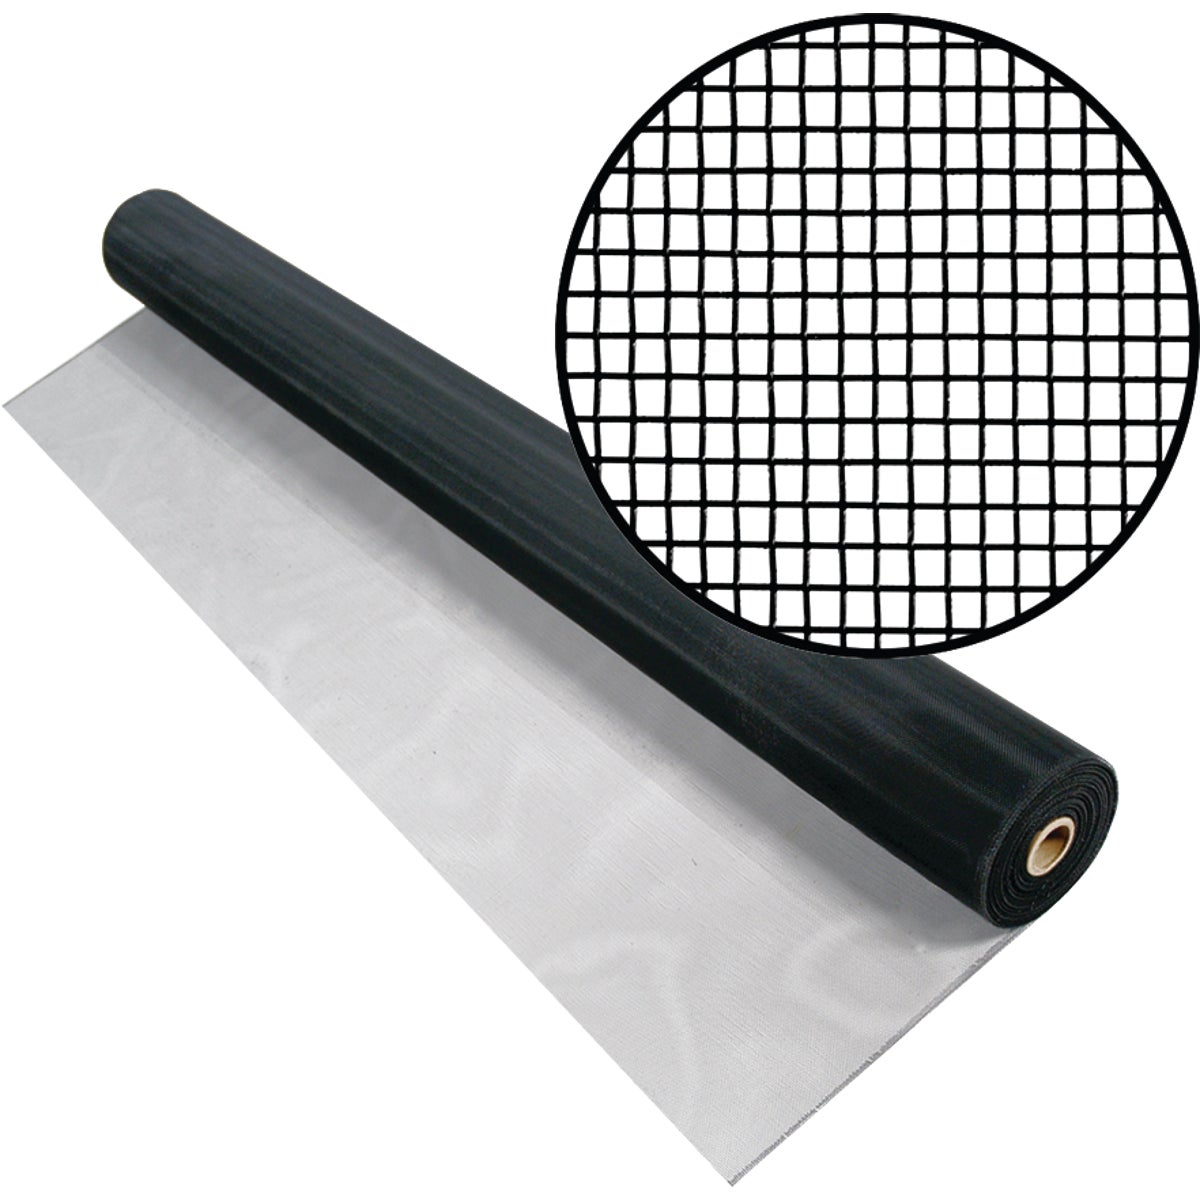 60X100 BLACK ALUM SCREEN - FCS9204M by New York Wire